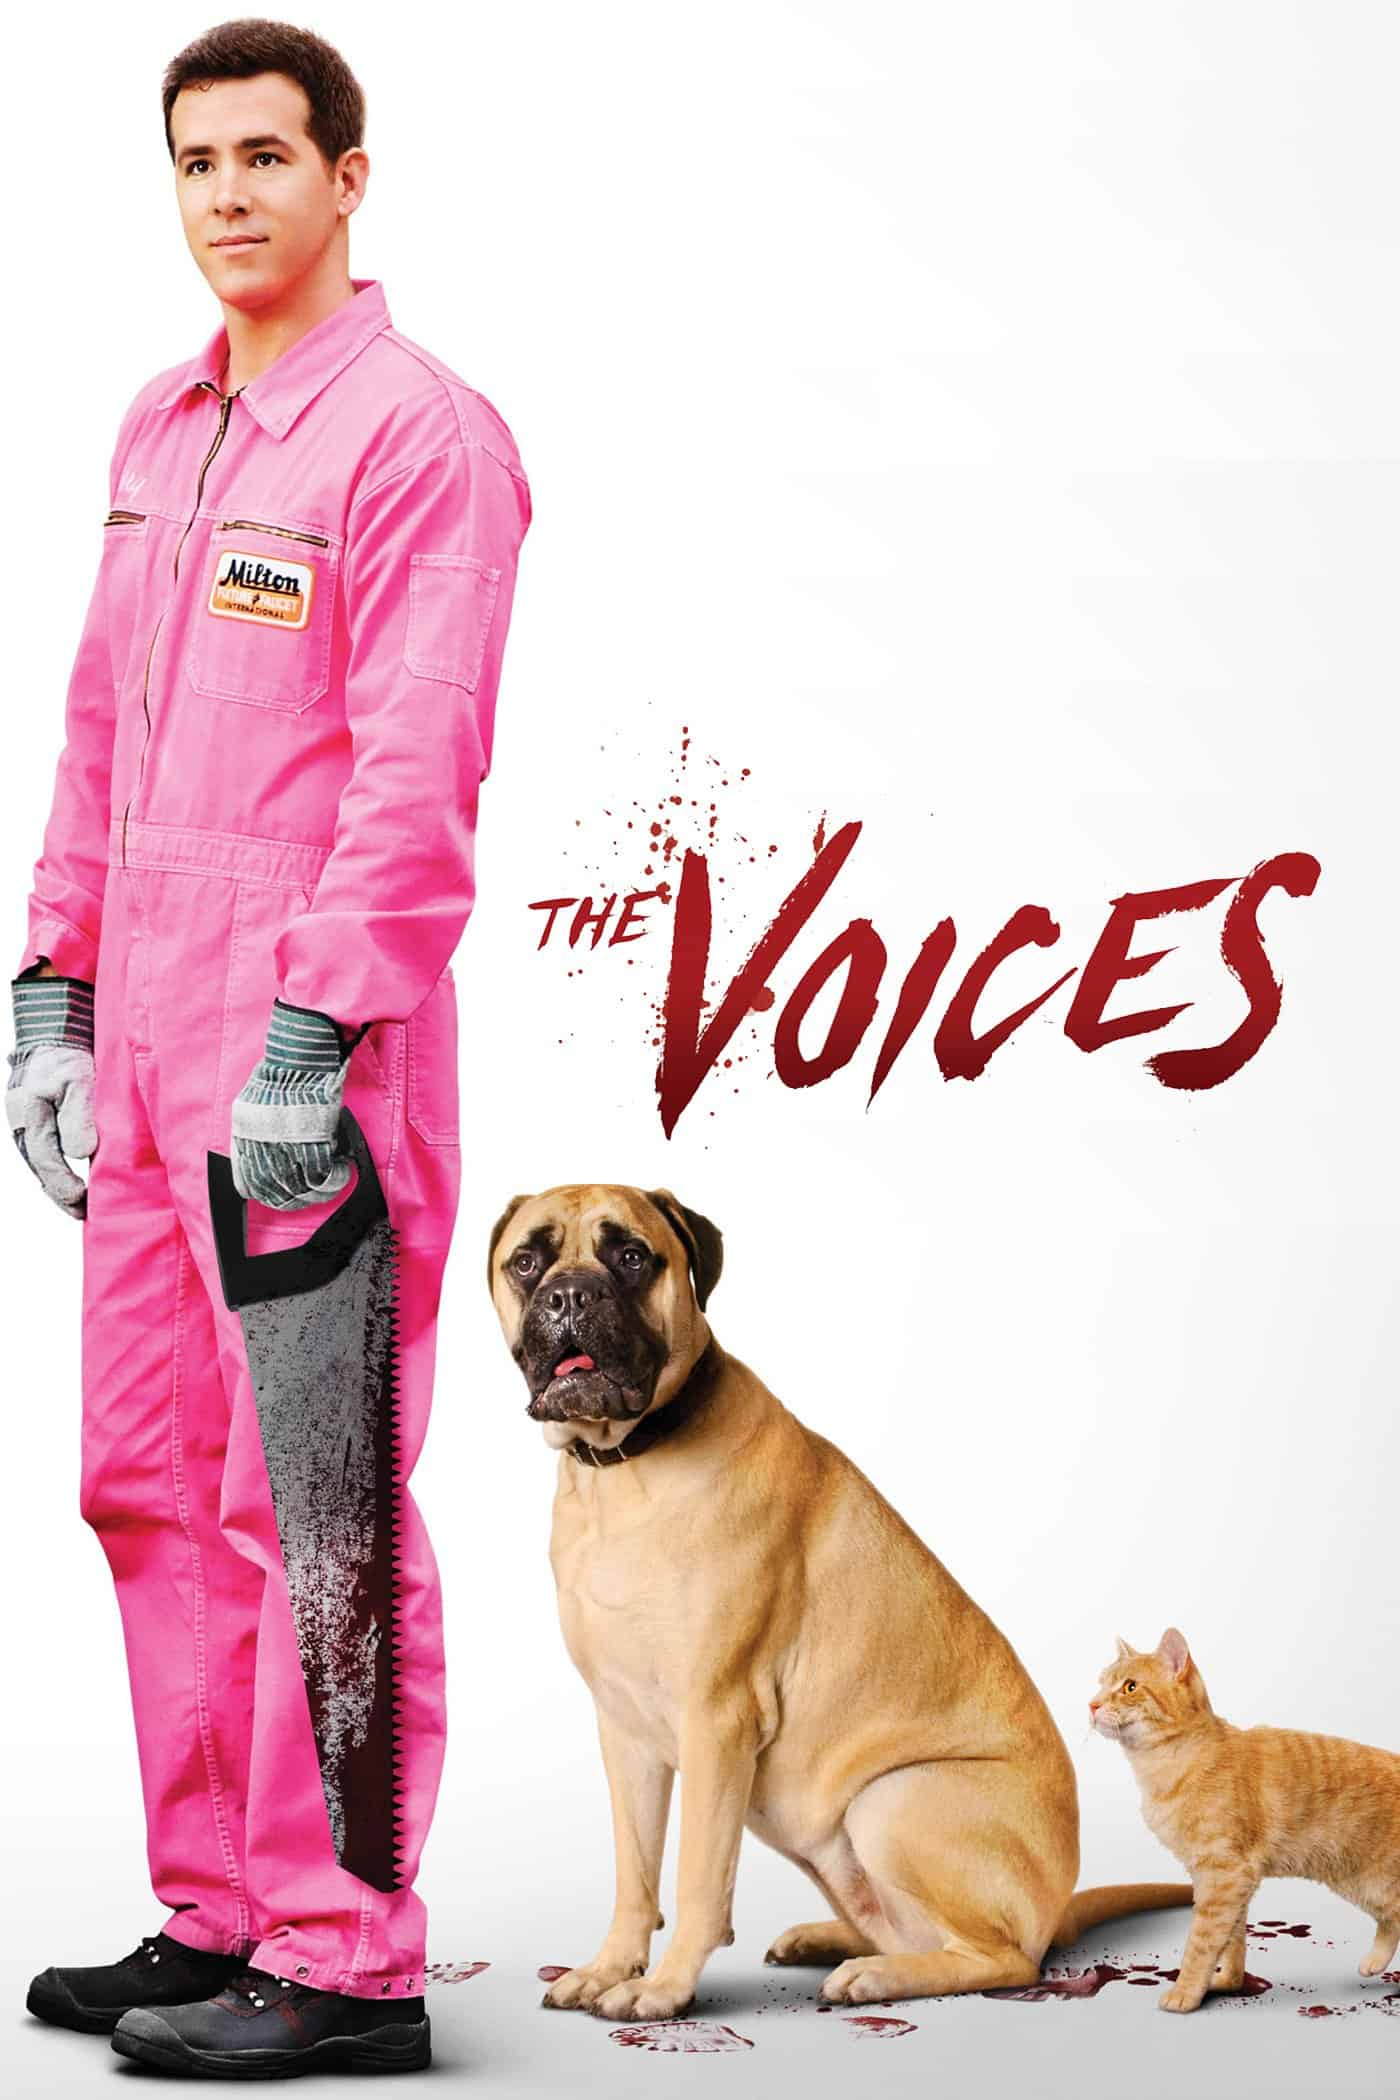 The Voices, 2014